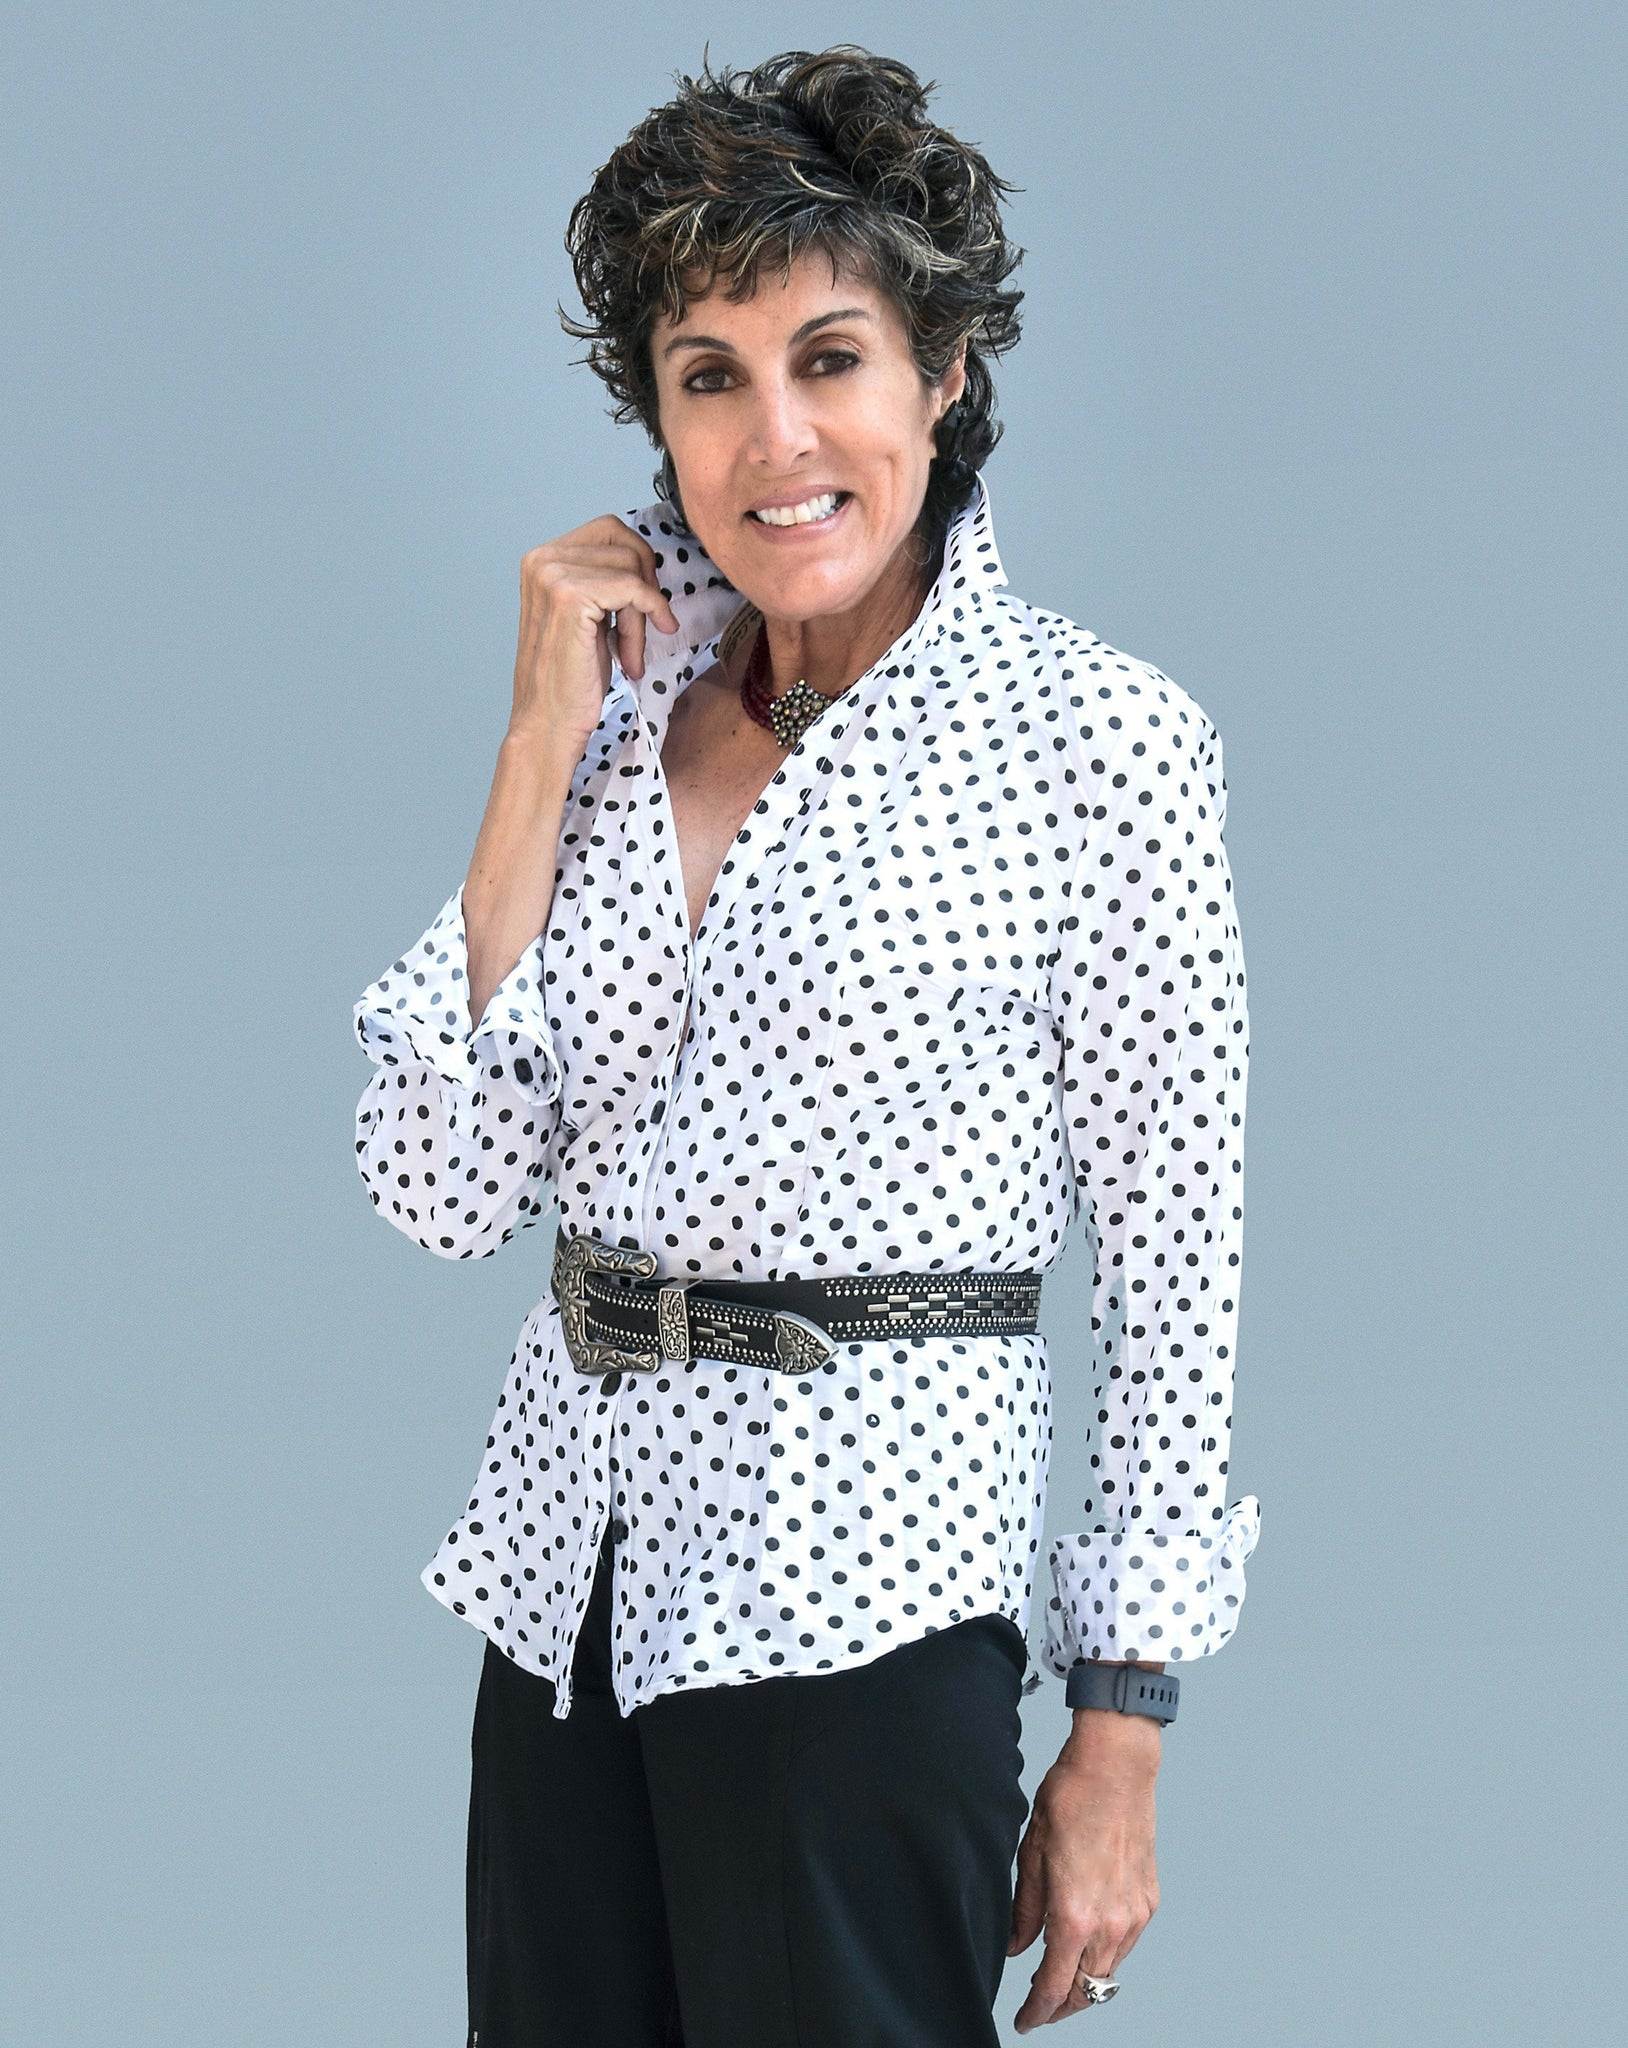 Women's Polka Dot Blouse